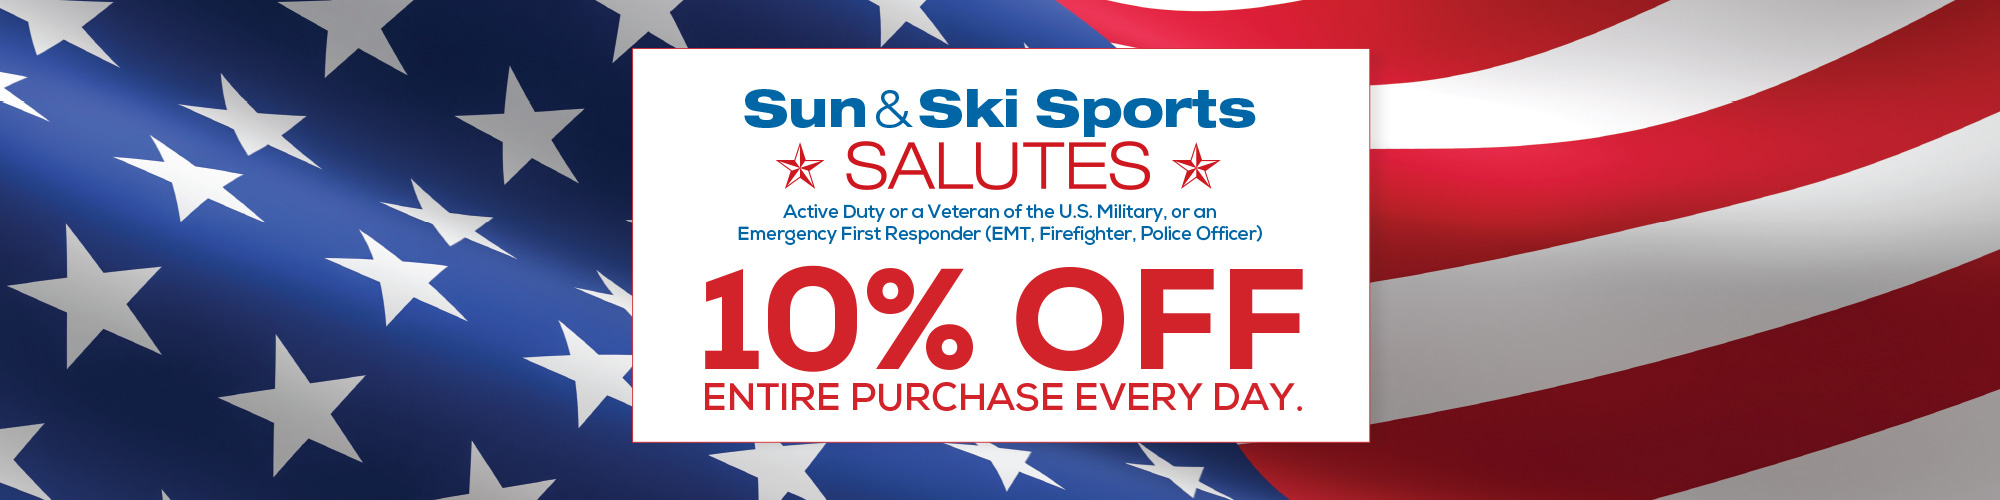 Sun & Ski Salutes -10% off entire purchase